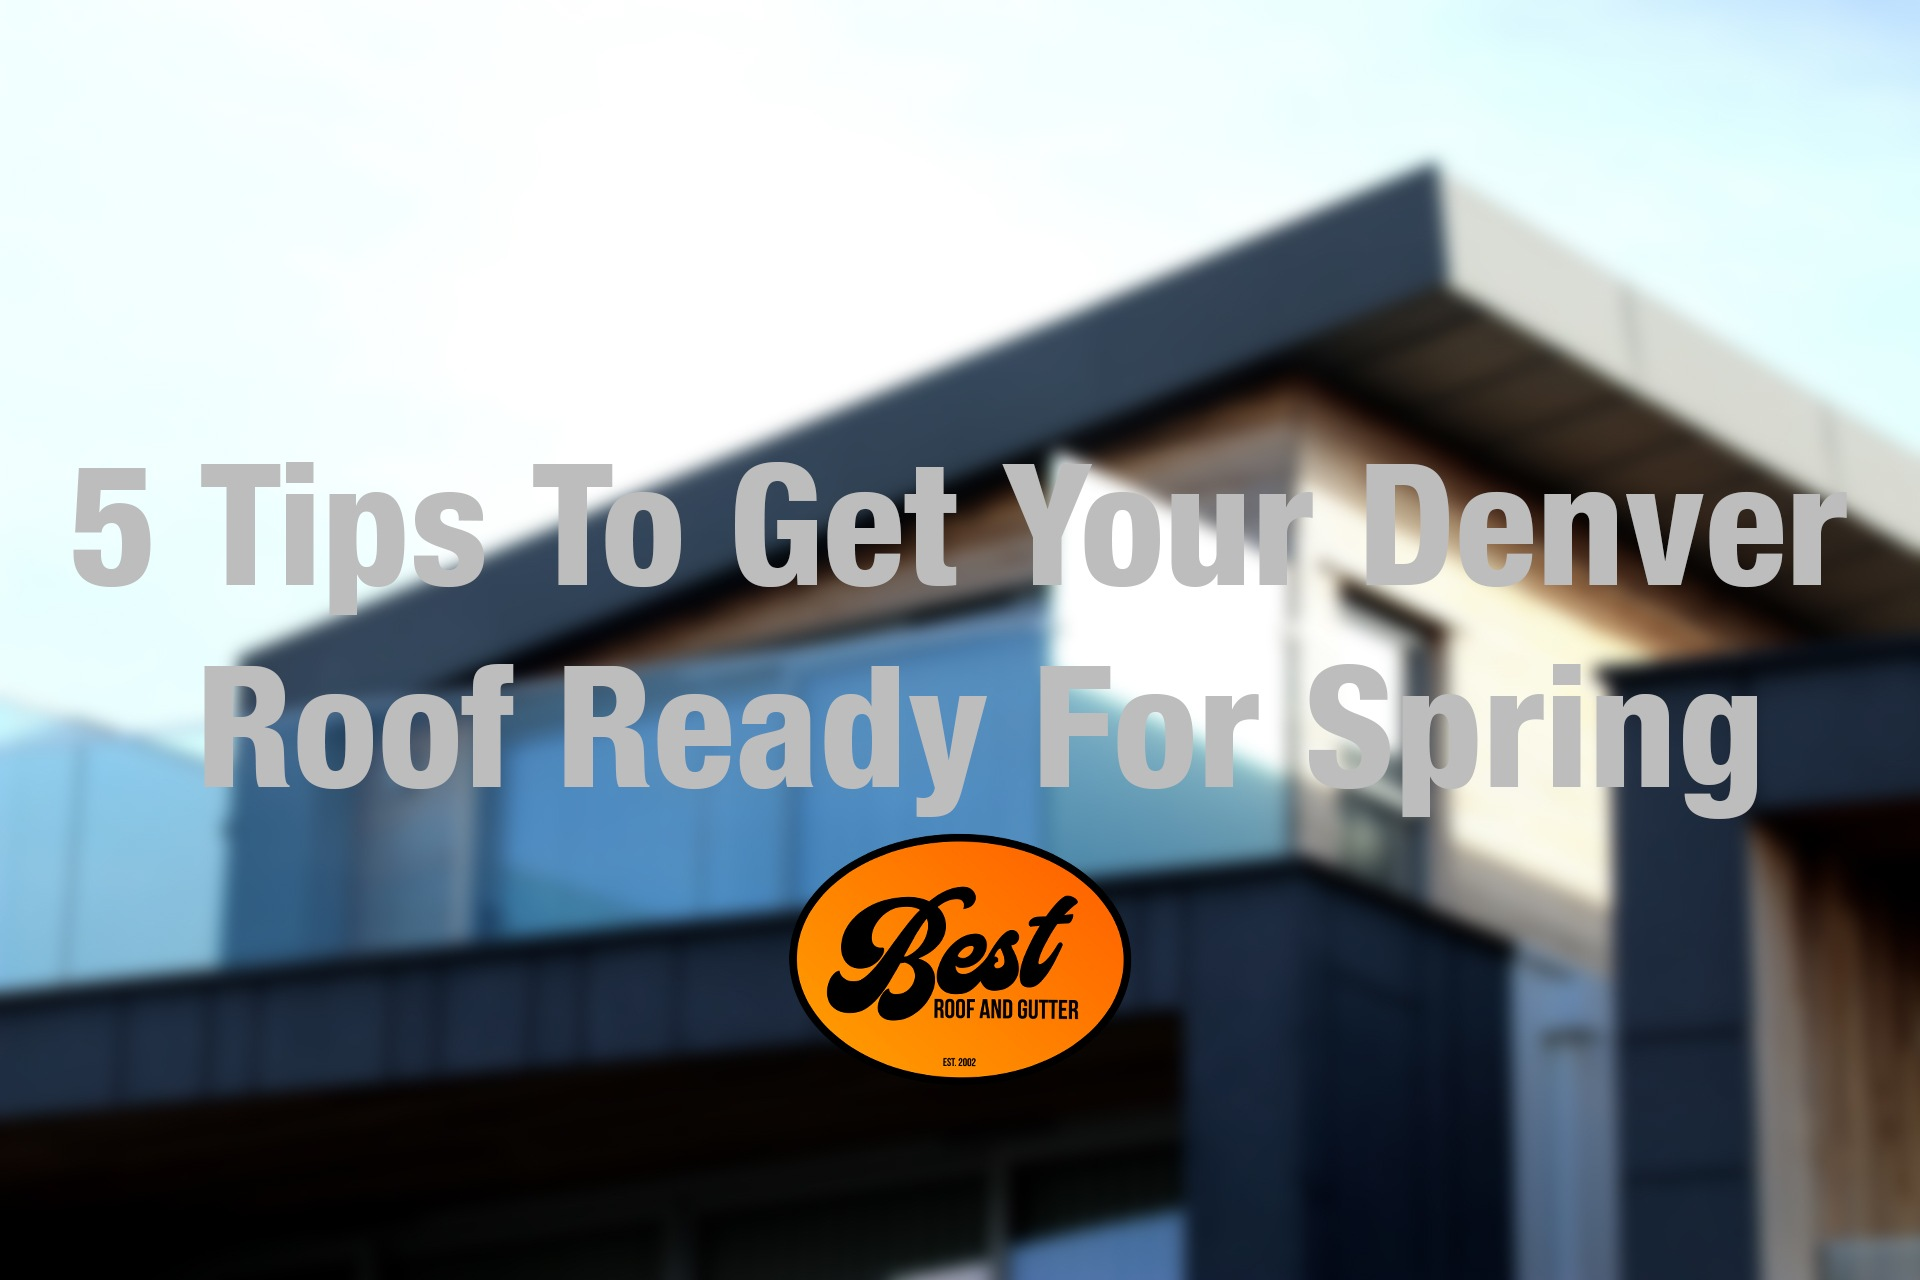 5 Tips To Get Your Denver Roof Ready For Spring